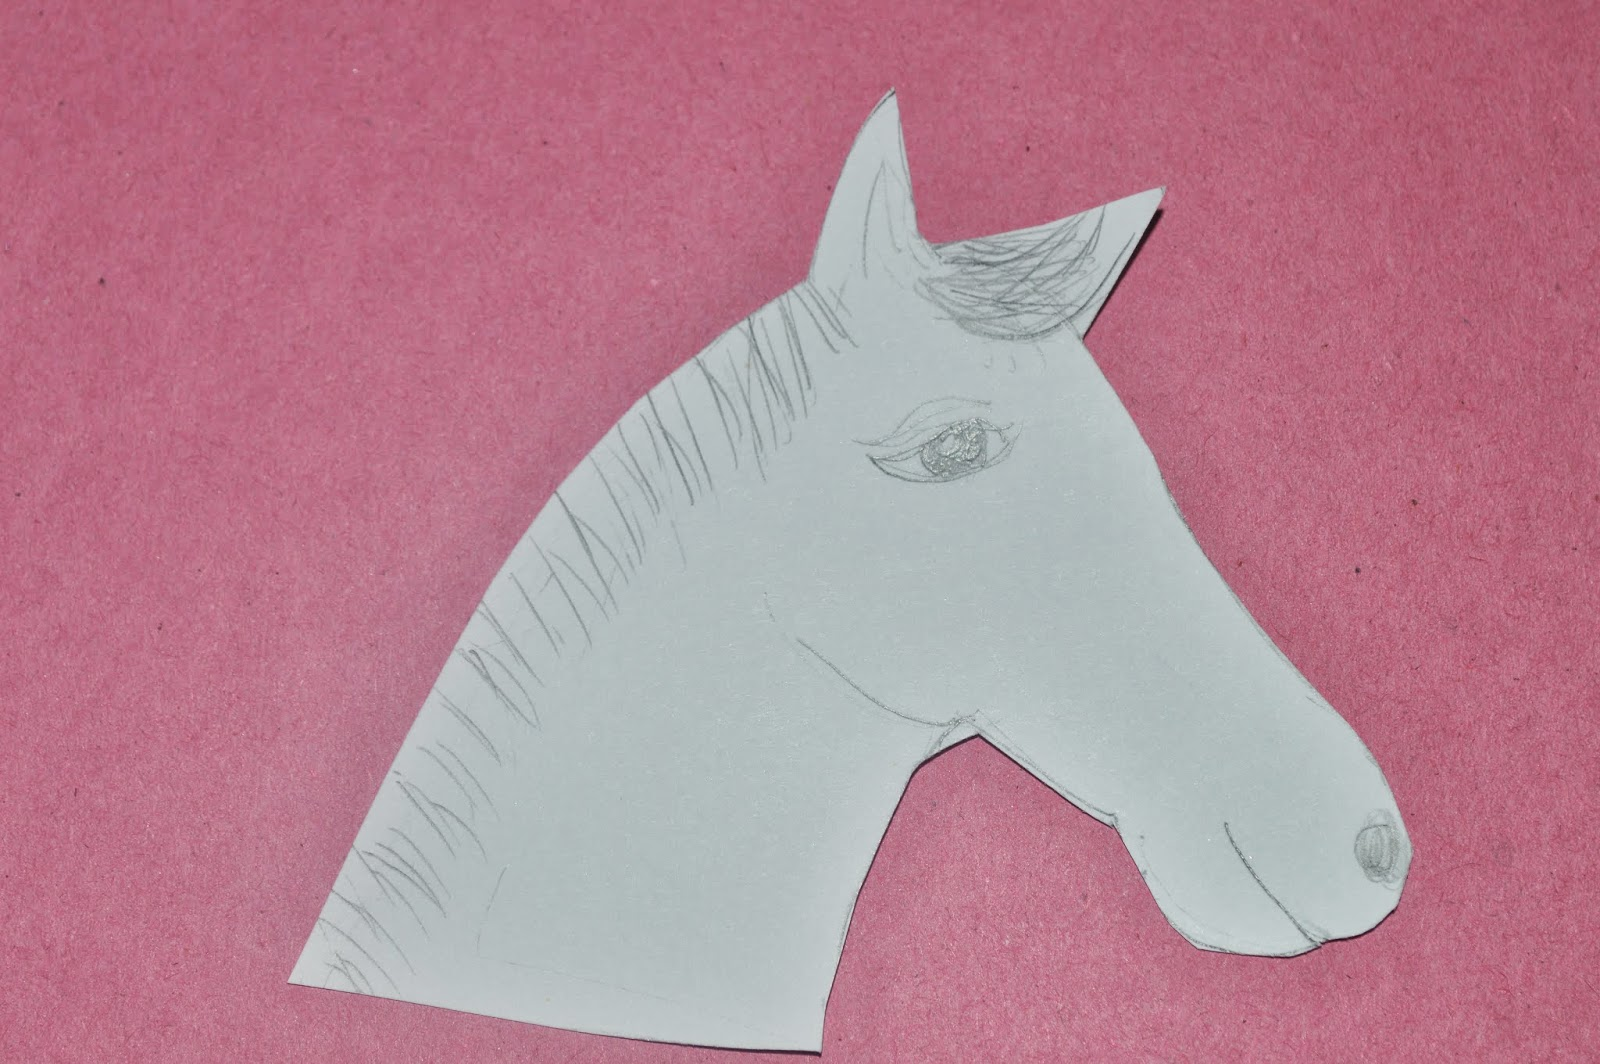 Chinese New Year  Cut Out Horse  Drawing Template